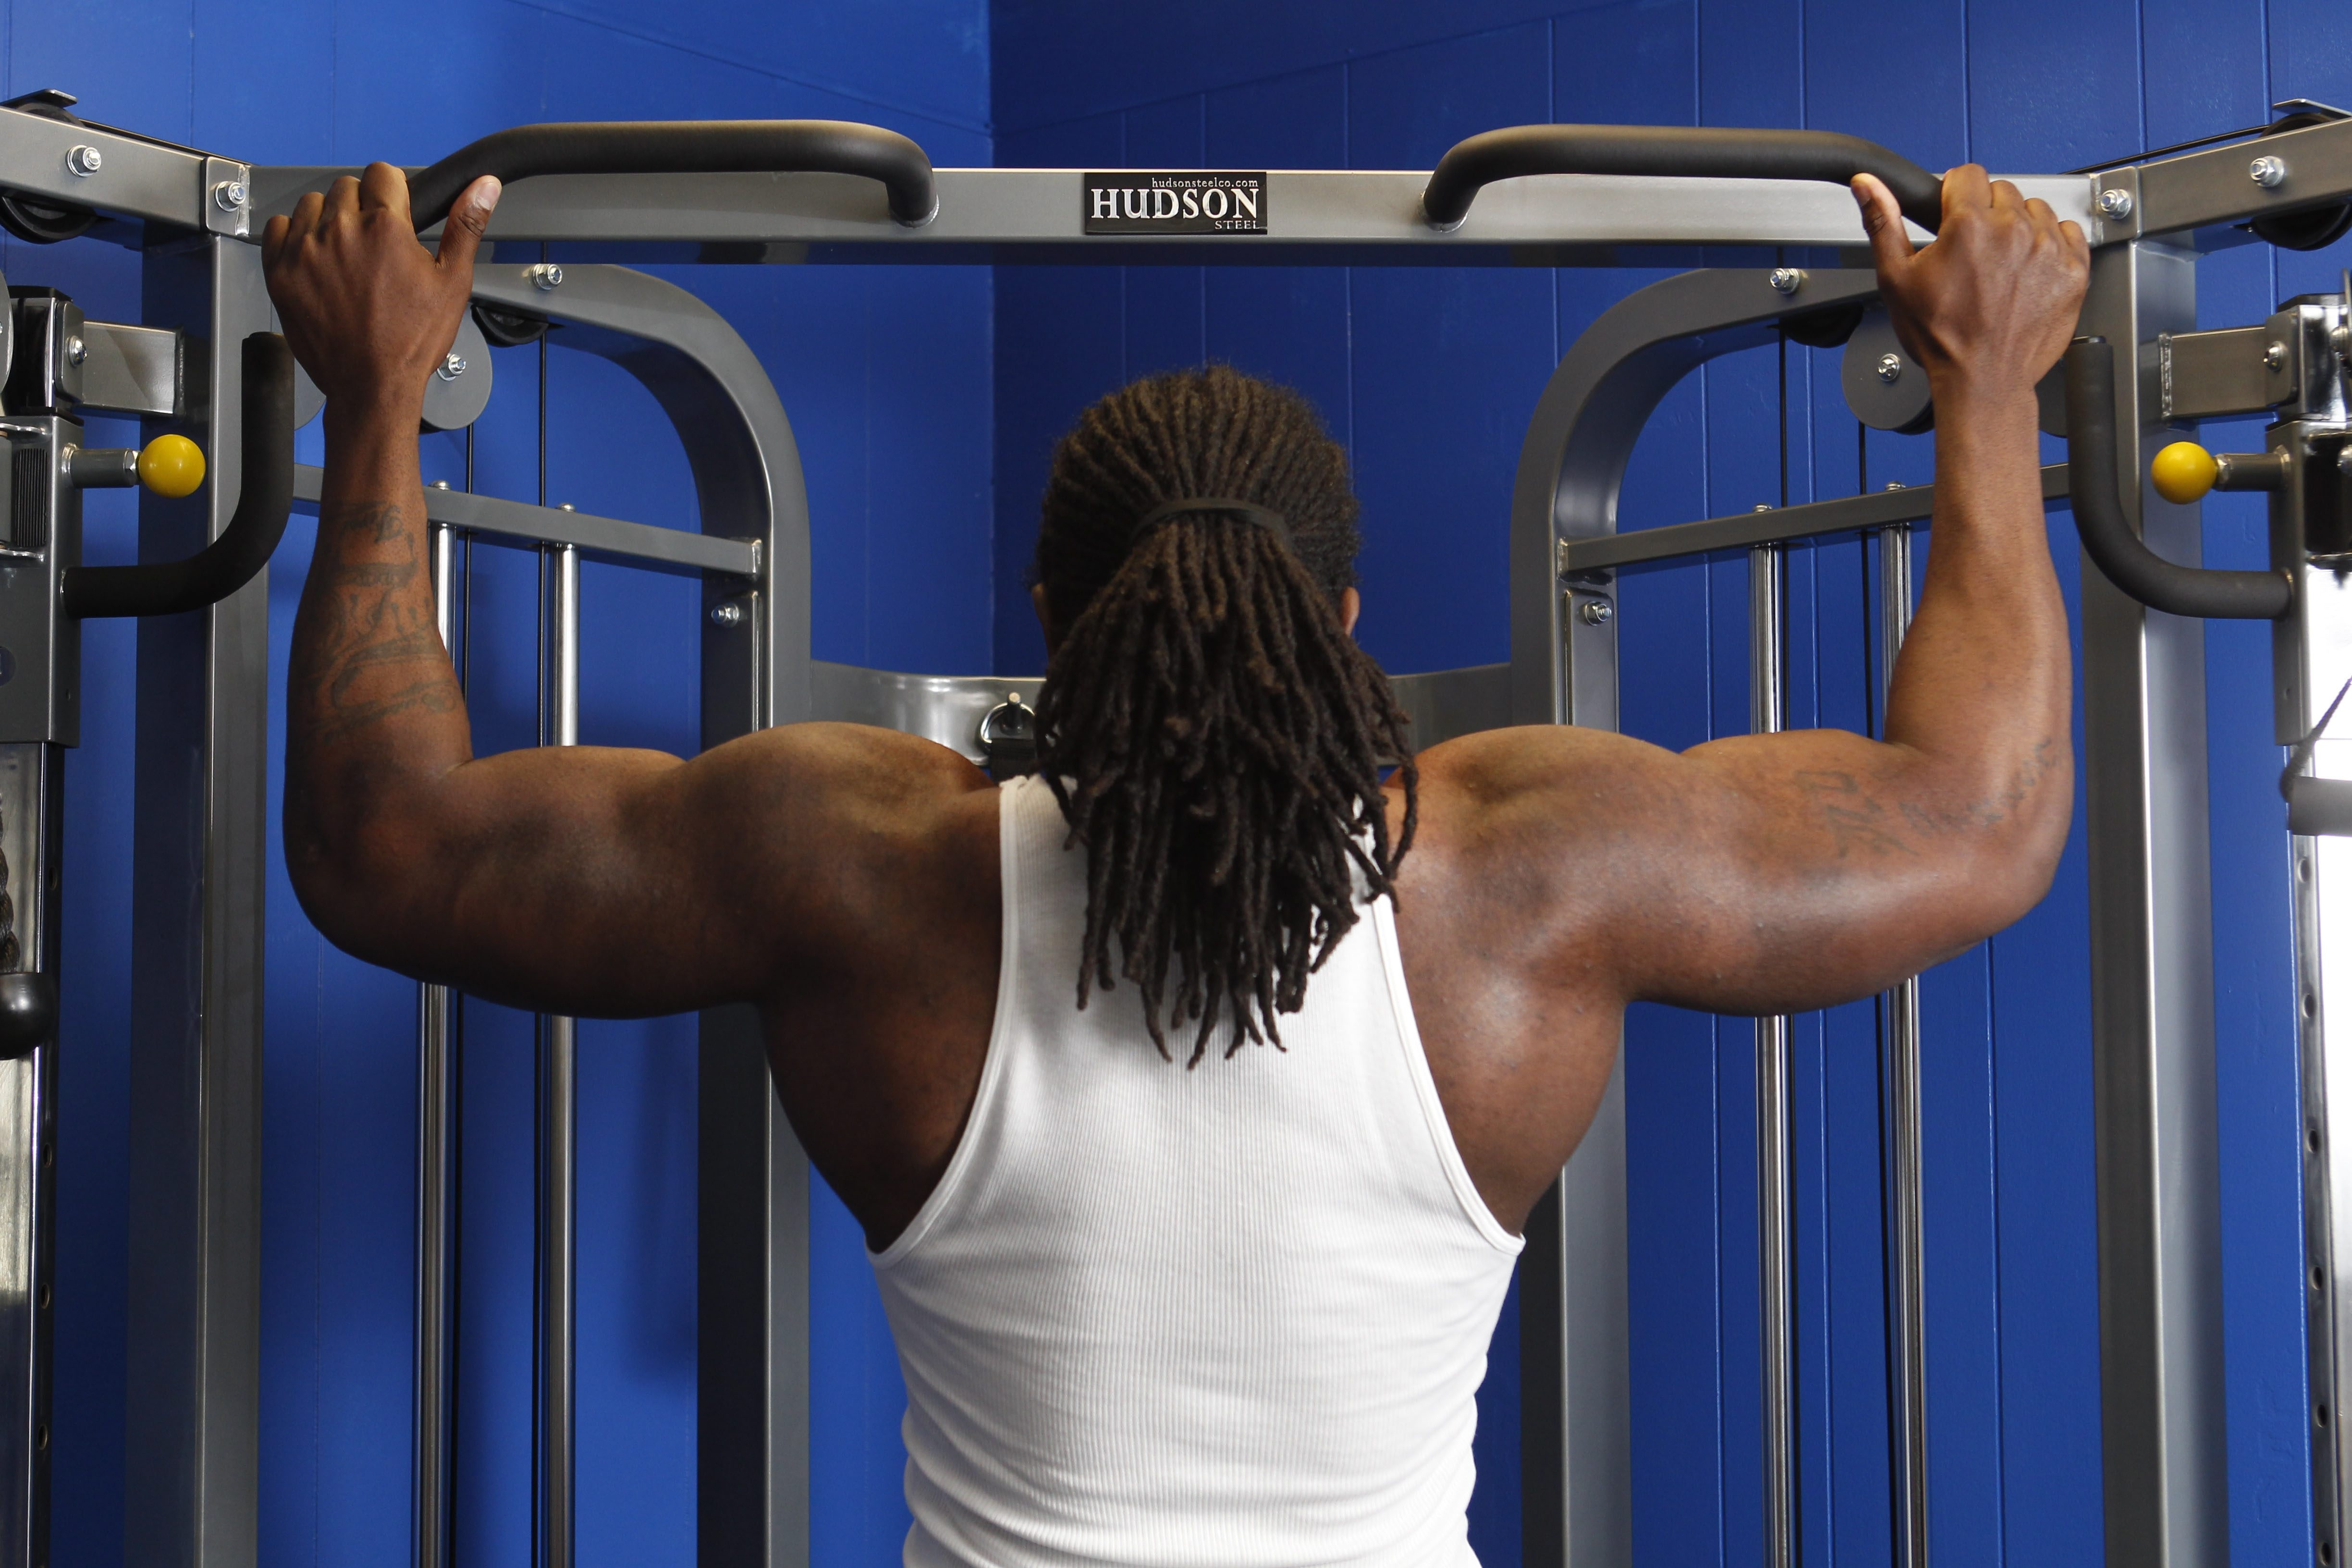 Dwayne Brinson is a personal fitness trainer and the owner of Fit Nation which recently opened on Main Street in Williamsville.  He works out six days a week. He does wide-grip pull-ups, June, 10, 2014. (Sharon Cantillon/Buffalo News)